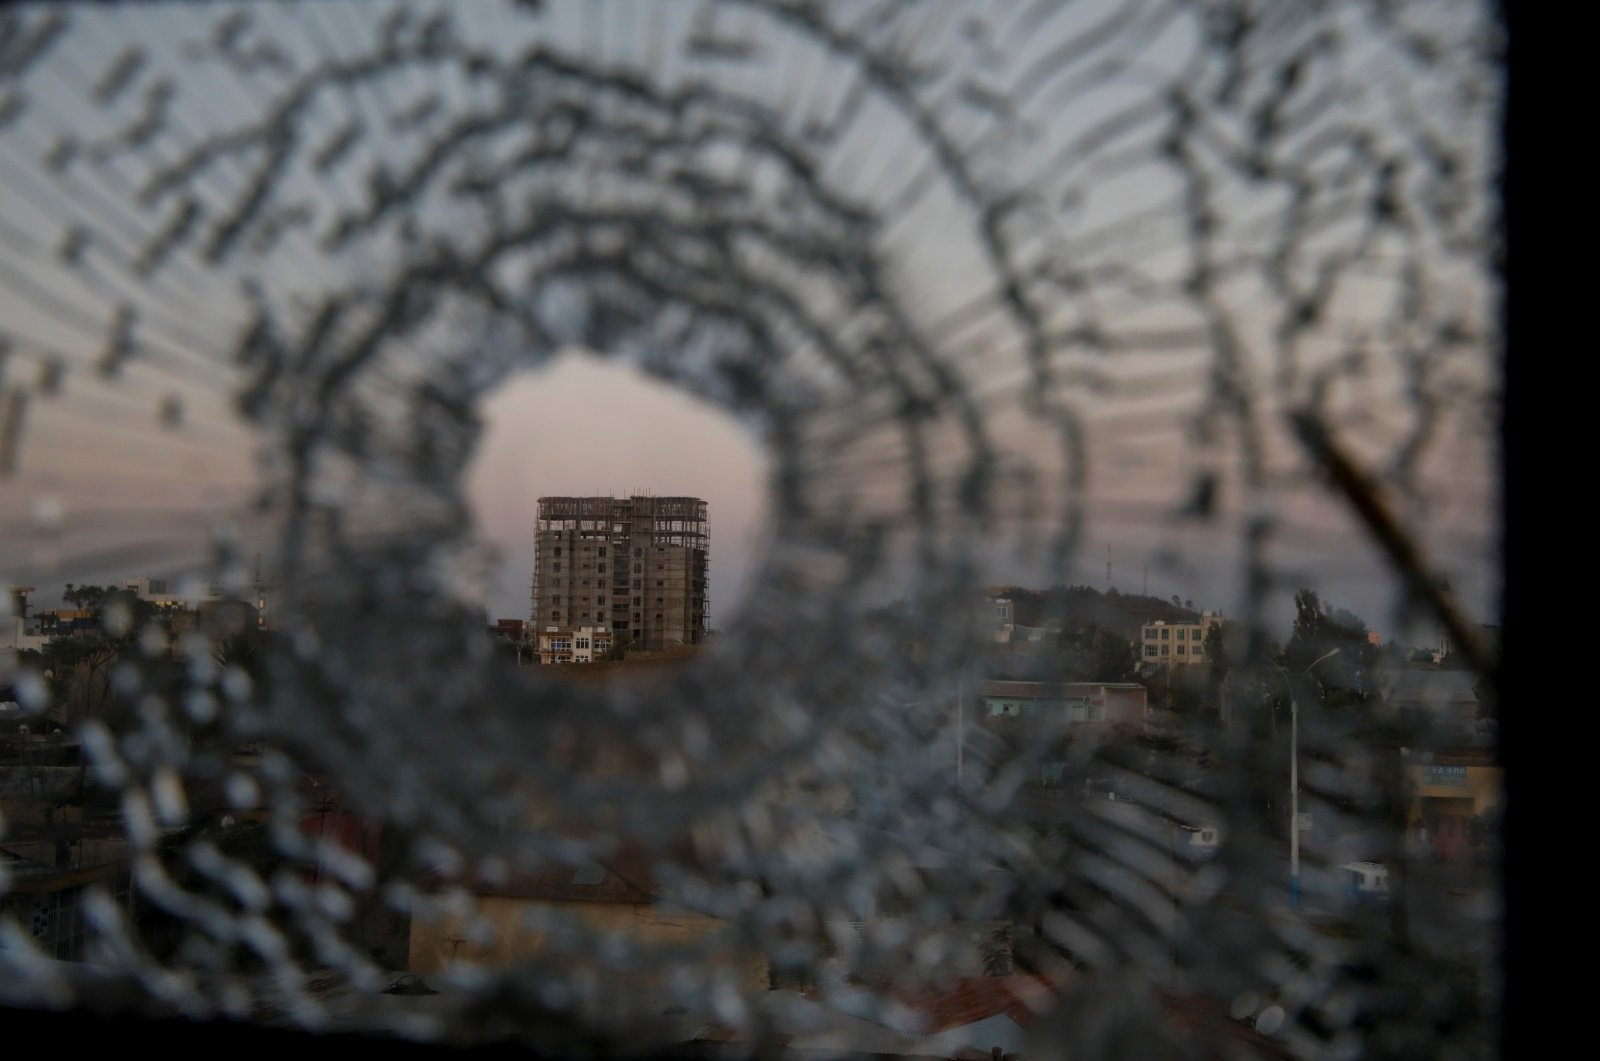 A building is seen through a bullet hole in a window of the Africa Hotel in the town of Shire, Tigray region, Ethiopia, March 17, 2021. (Reuters Photo)